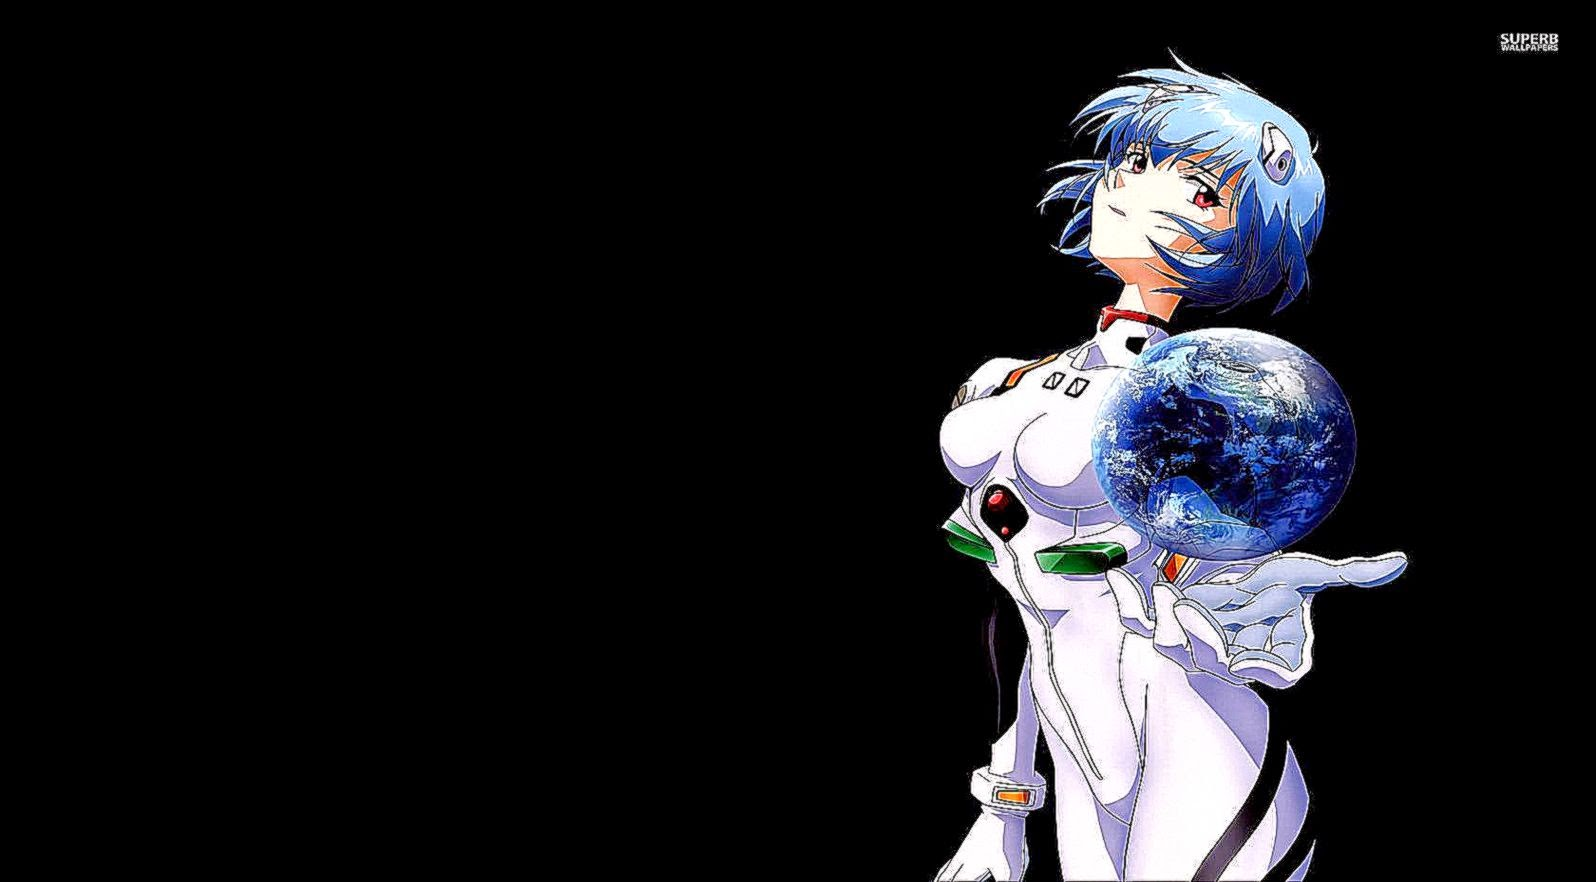 Abstract Rei Ayanami Anime Movie Wallpaper | Wallpapers ...